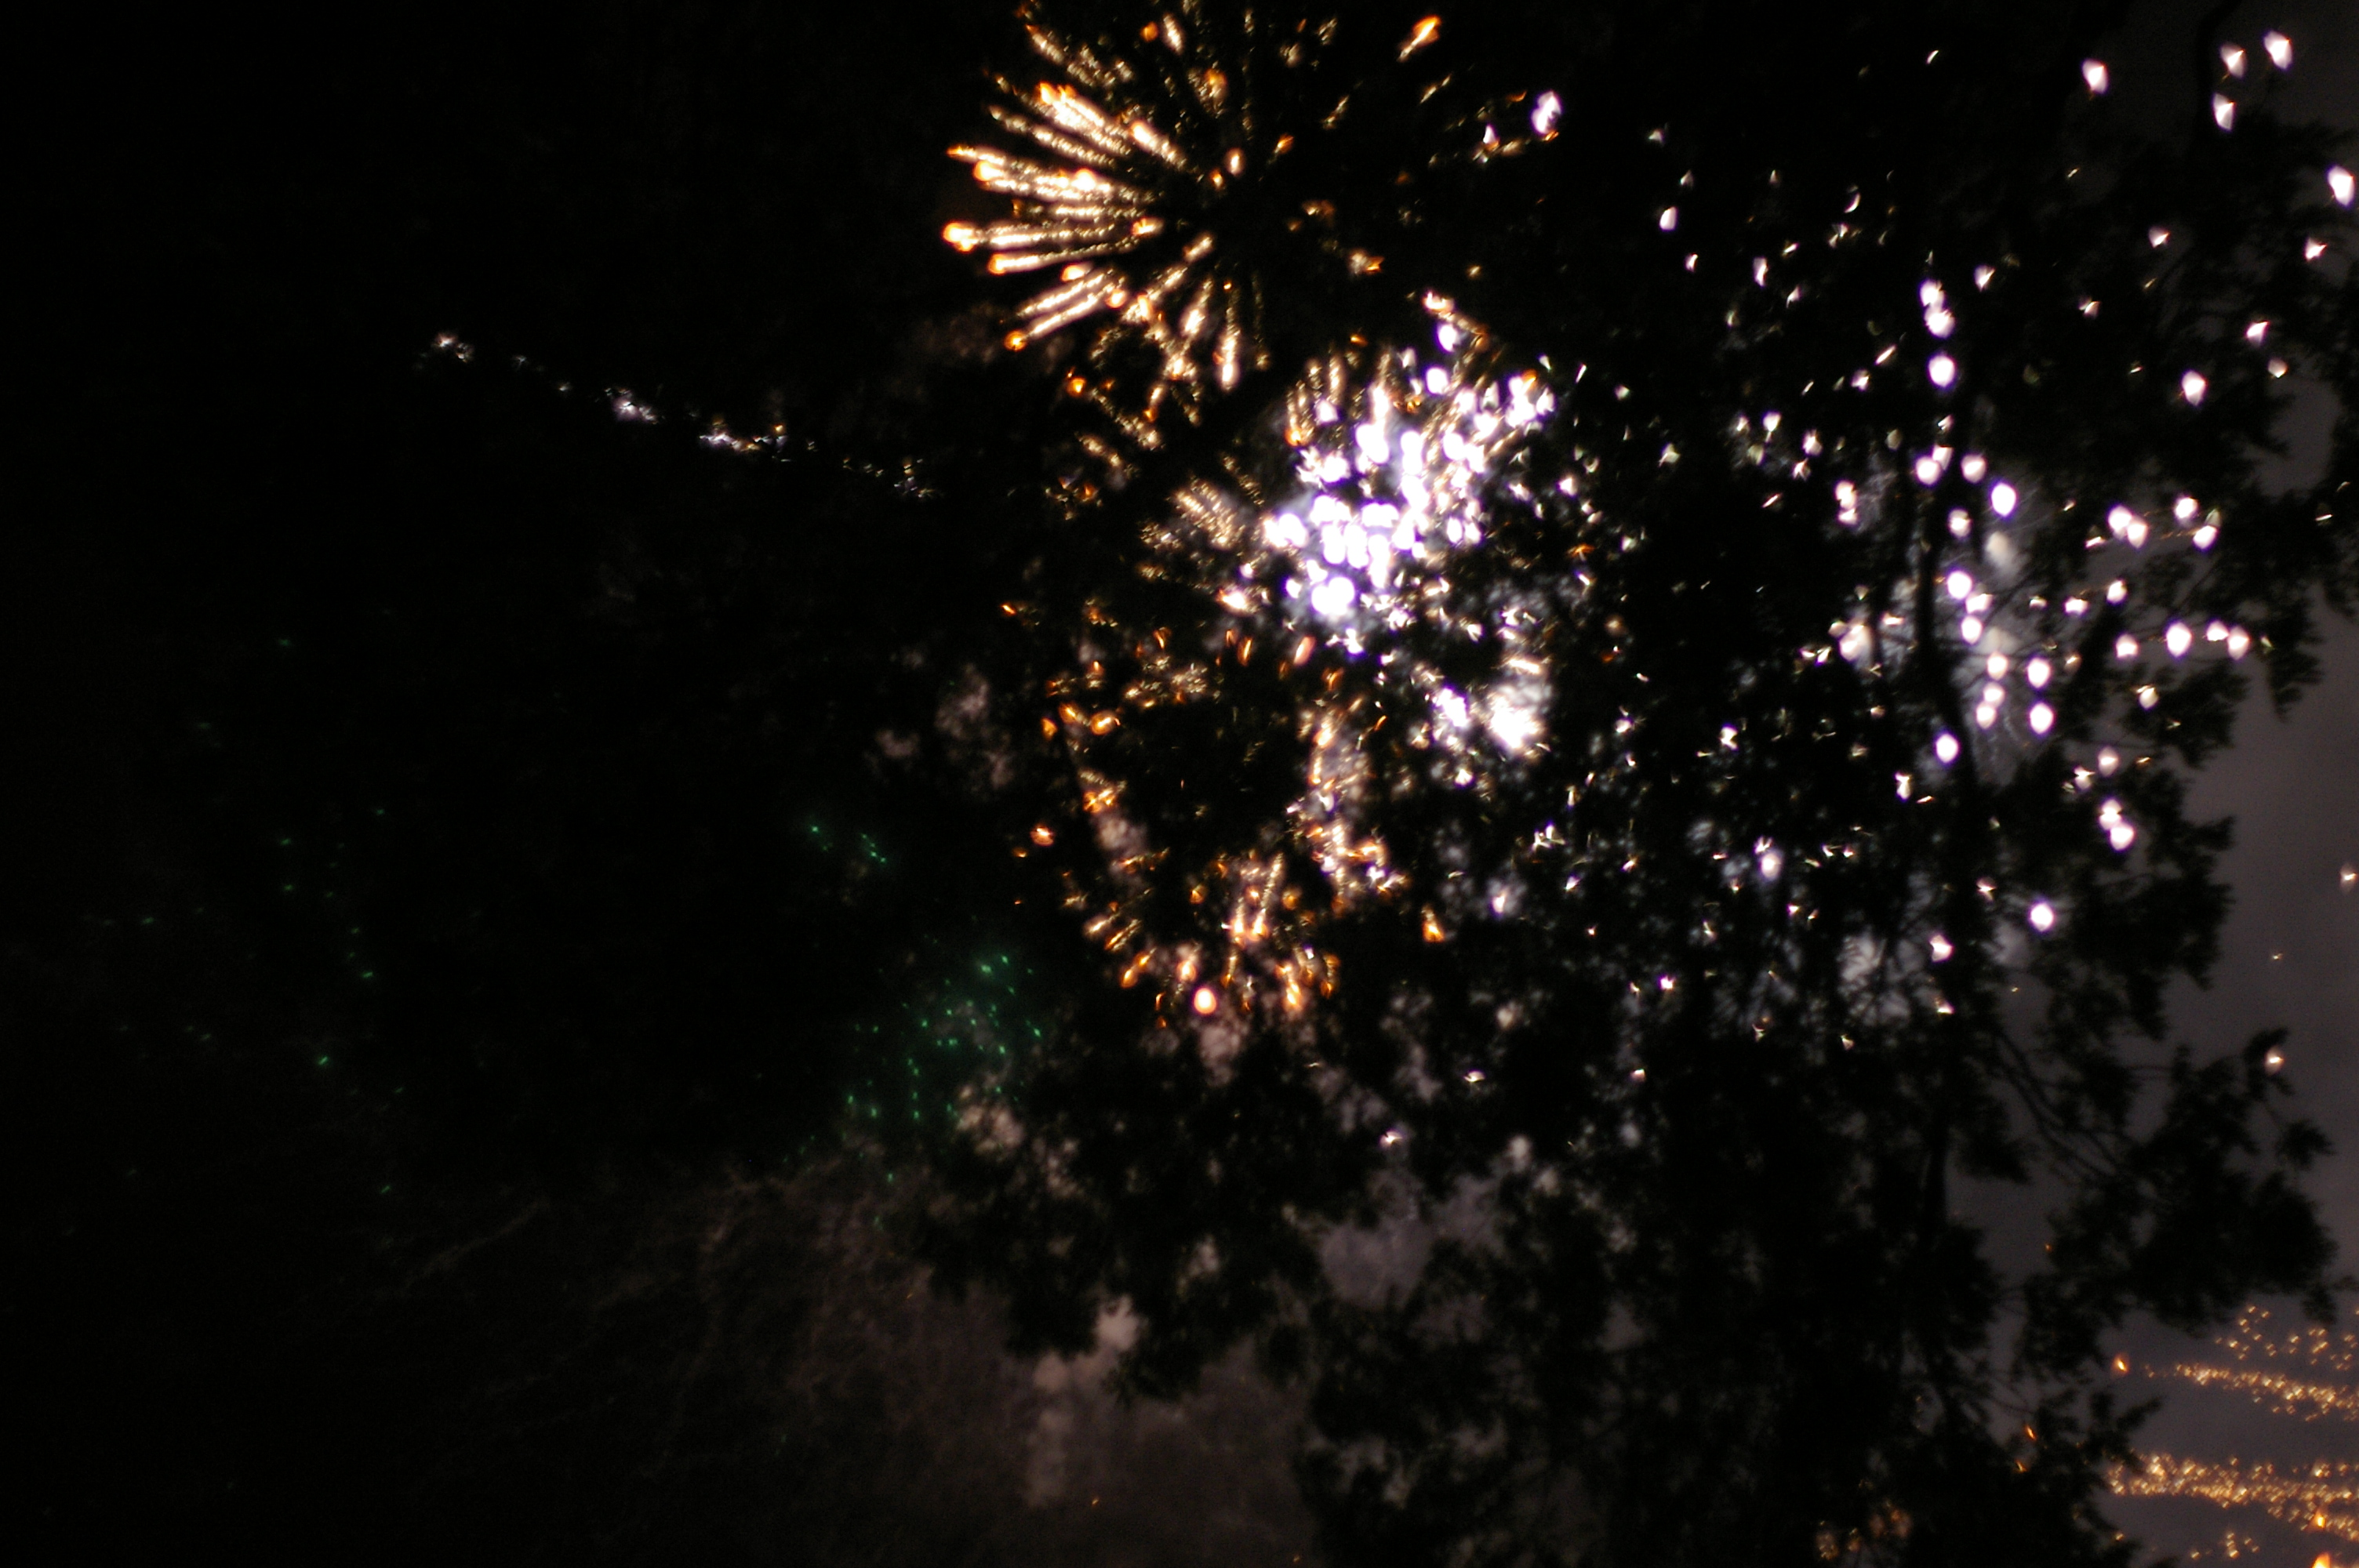 fireworks and trees abstract backdrop